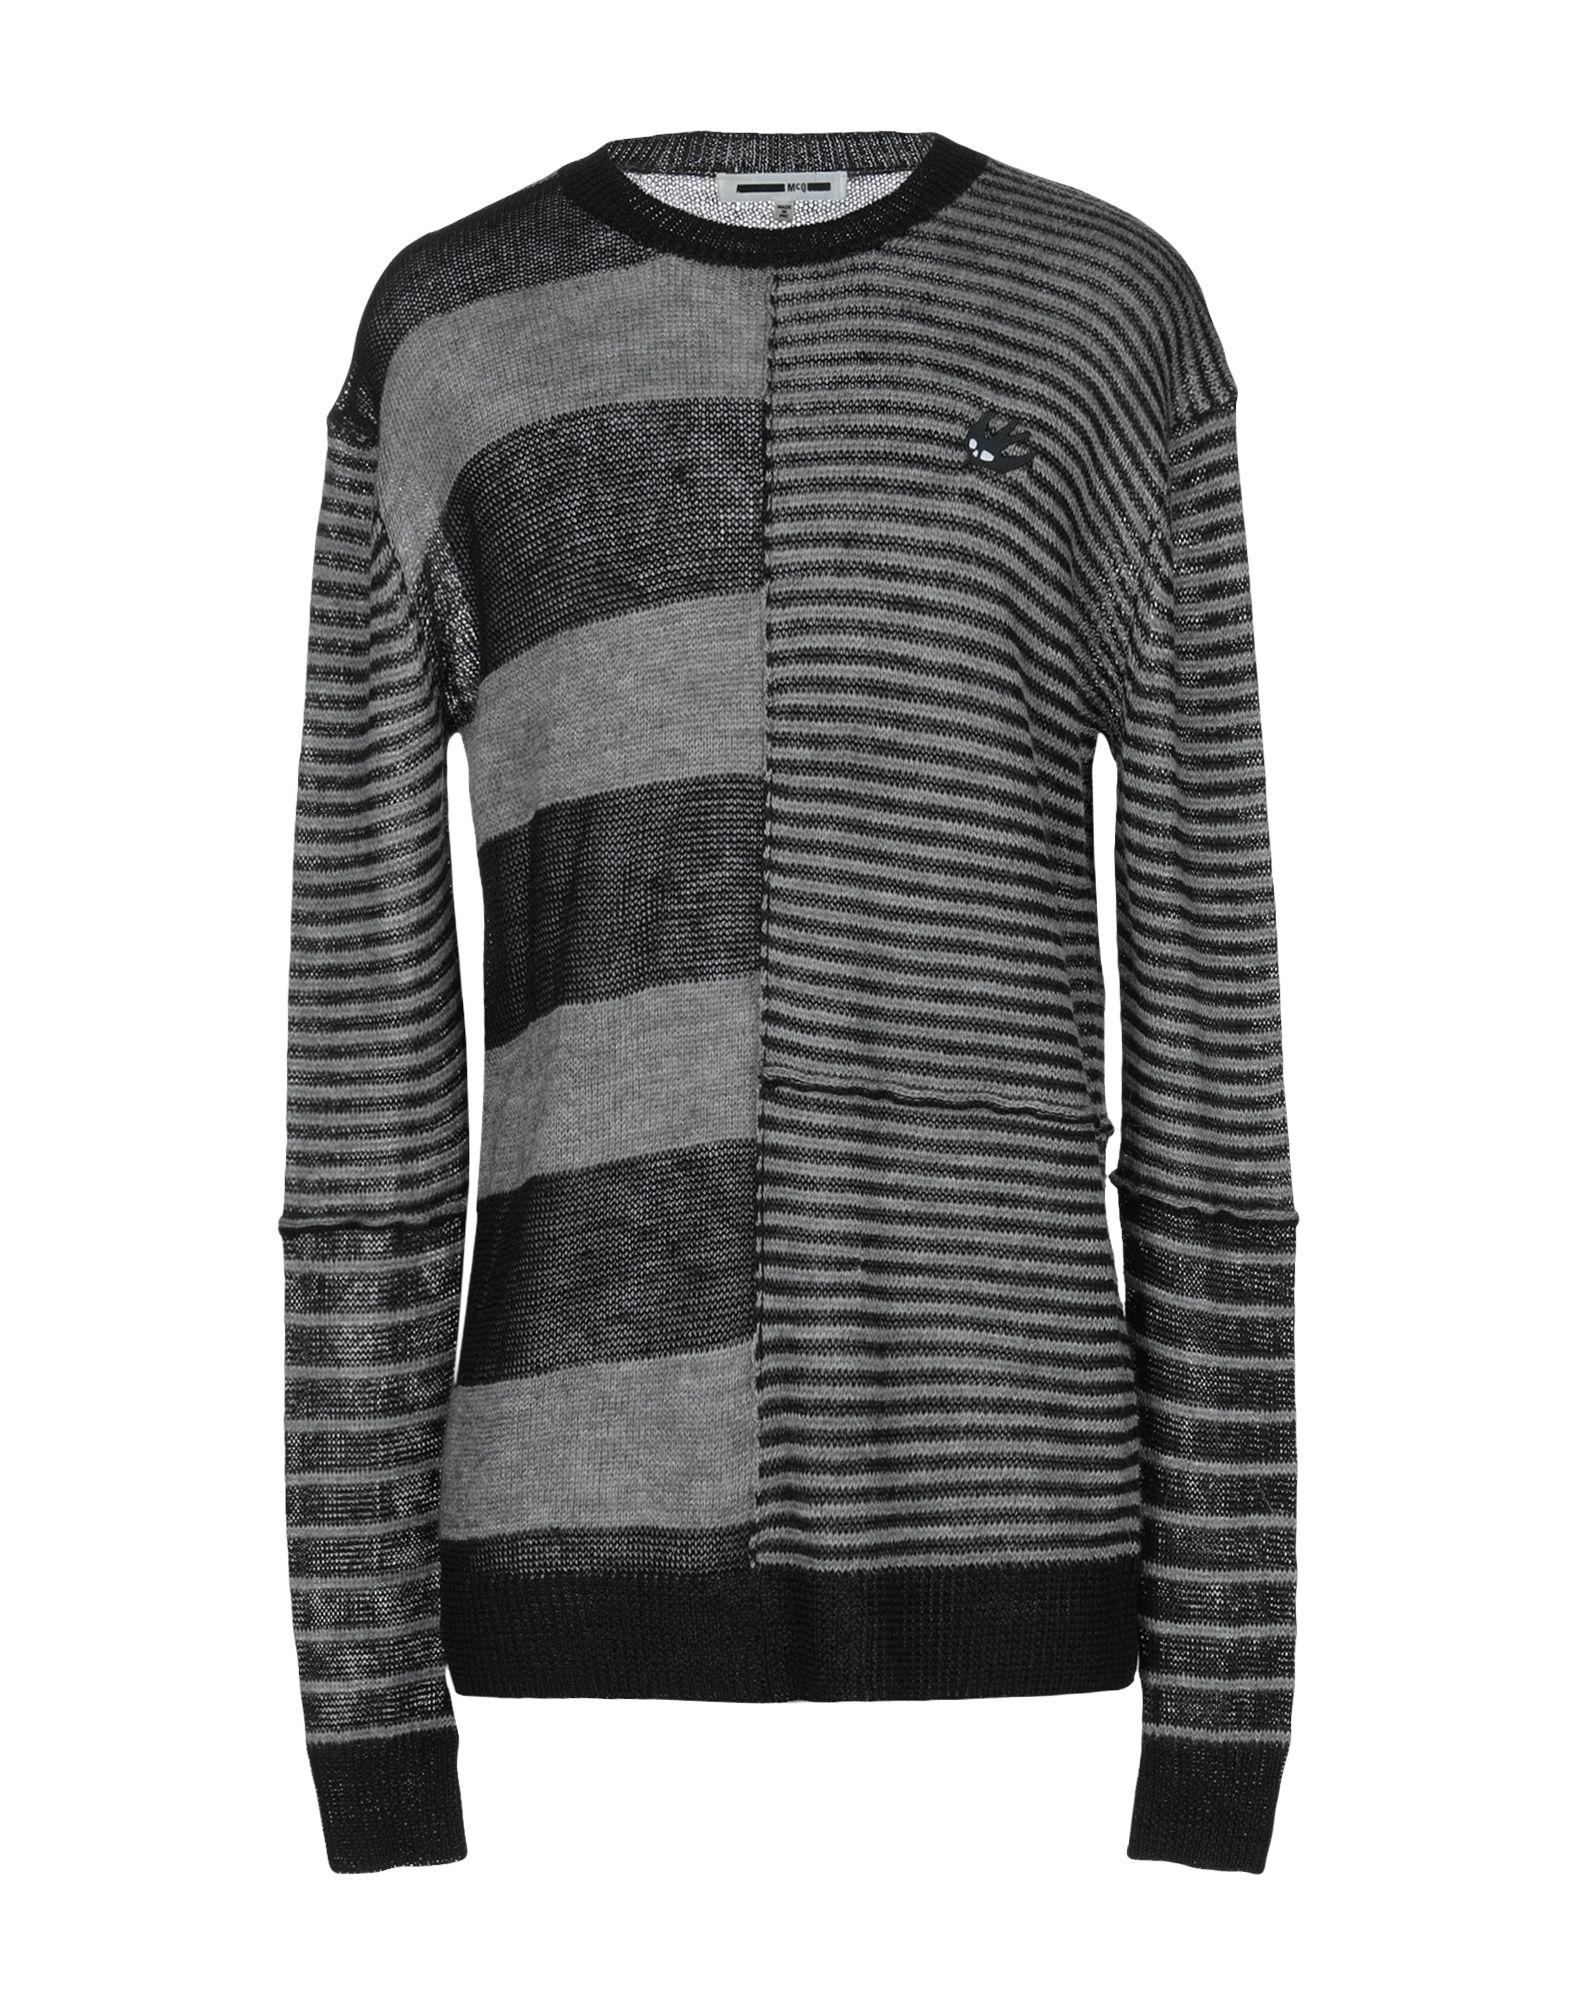 2a69d973ee Lyst - McQ Jumper in Gray for Men - Save 22%